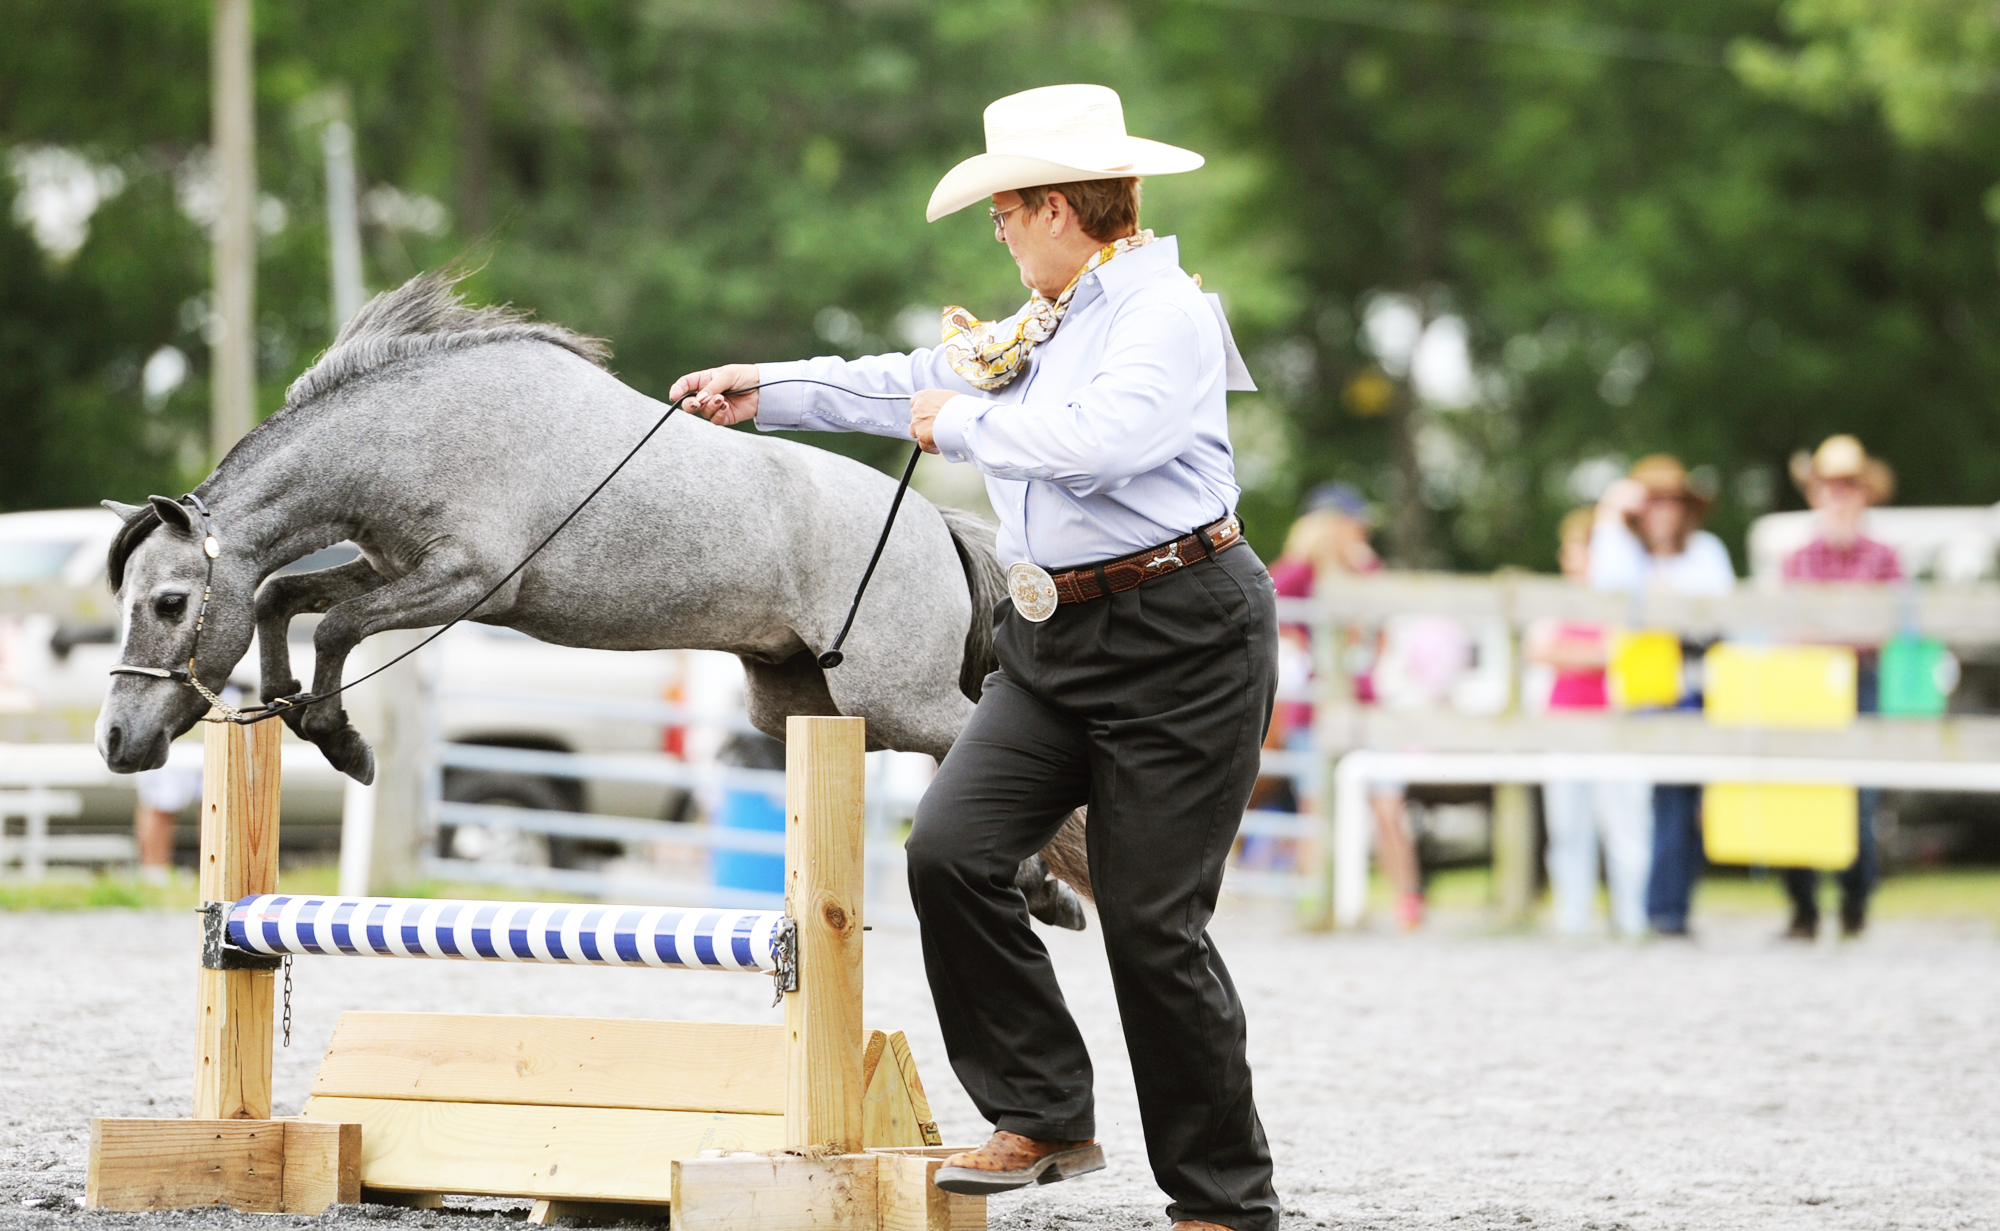 Tiny steeds, big deeds at the Howard County Fair Miniature Horse Show